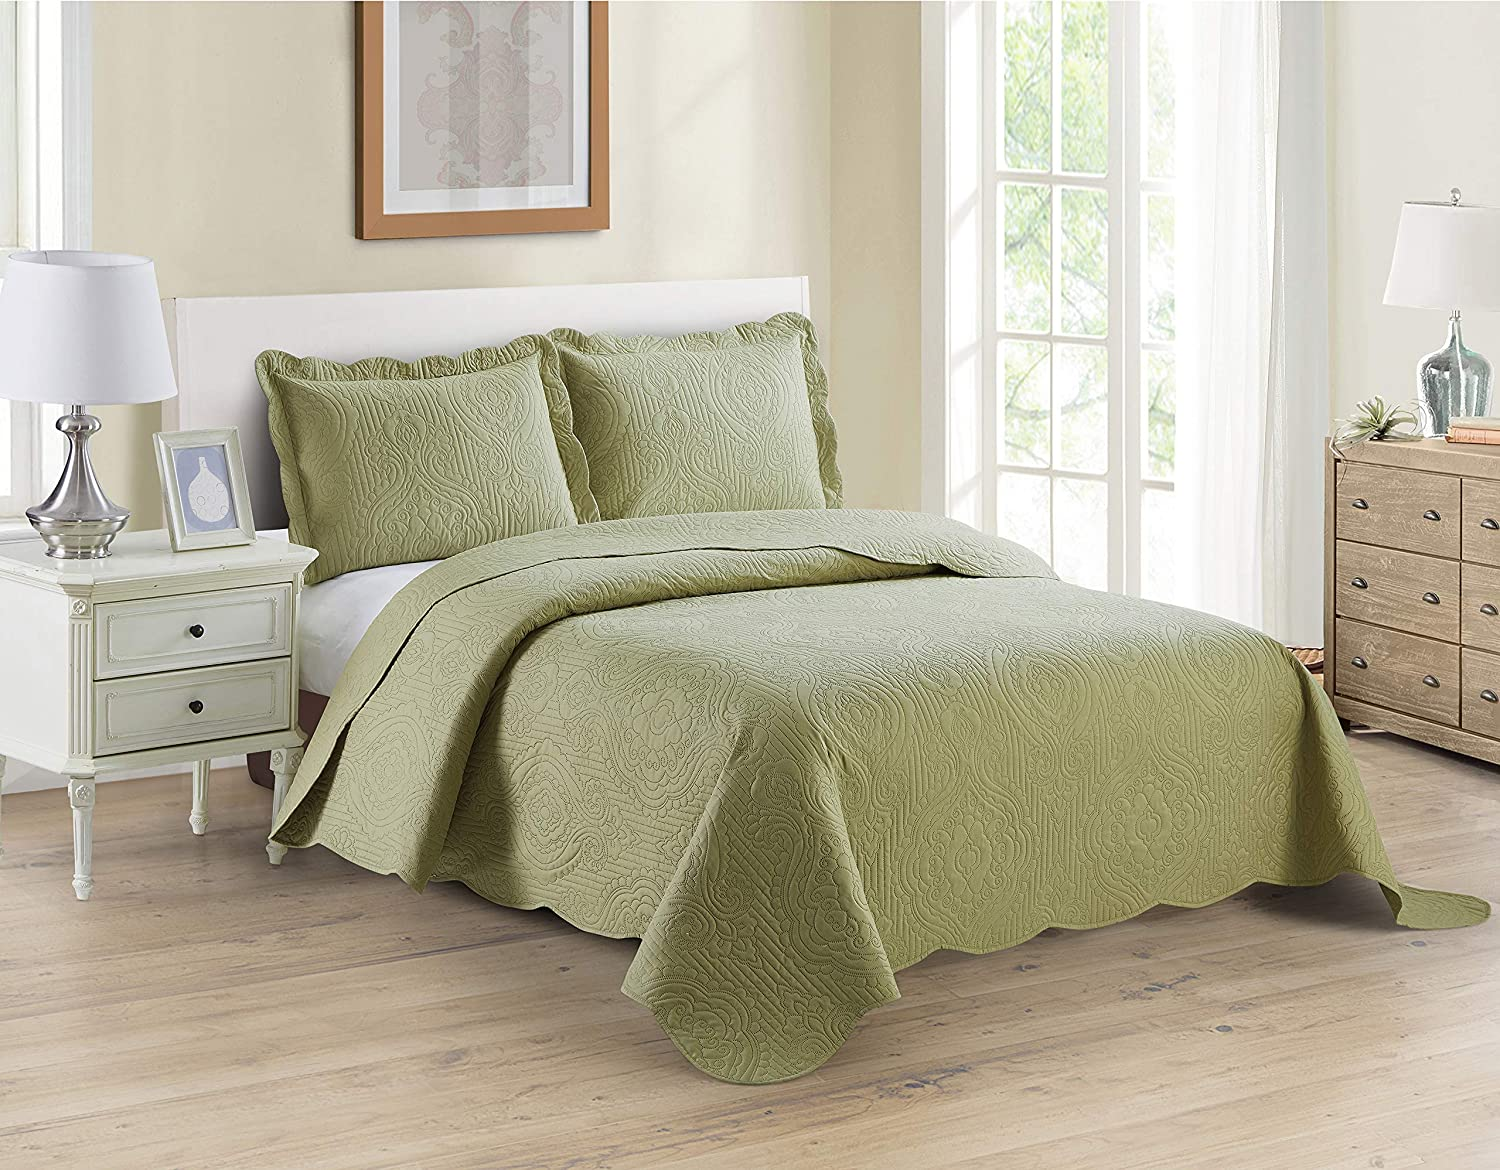 Home Collection 3pc King/Cal King Over Size Luxury Embossed Bedspread Set Light Weight Solid Sage Green New